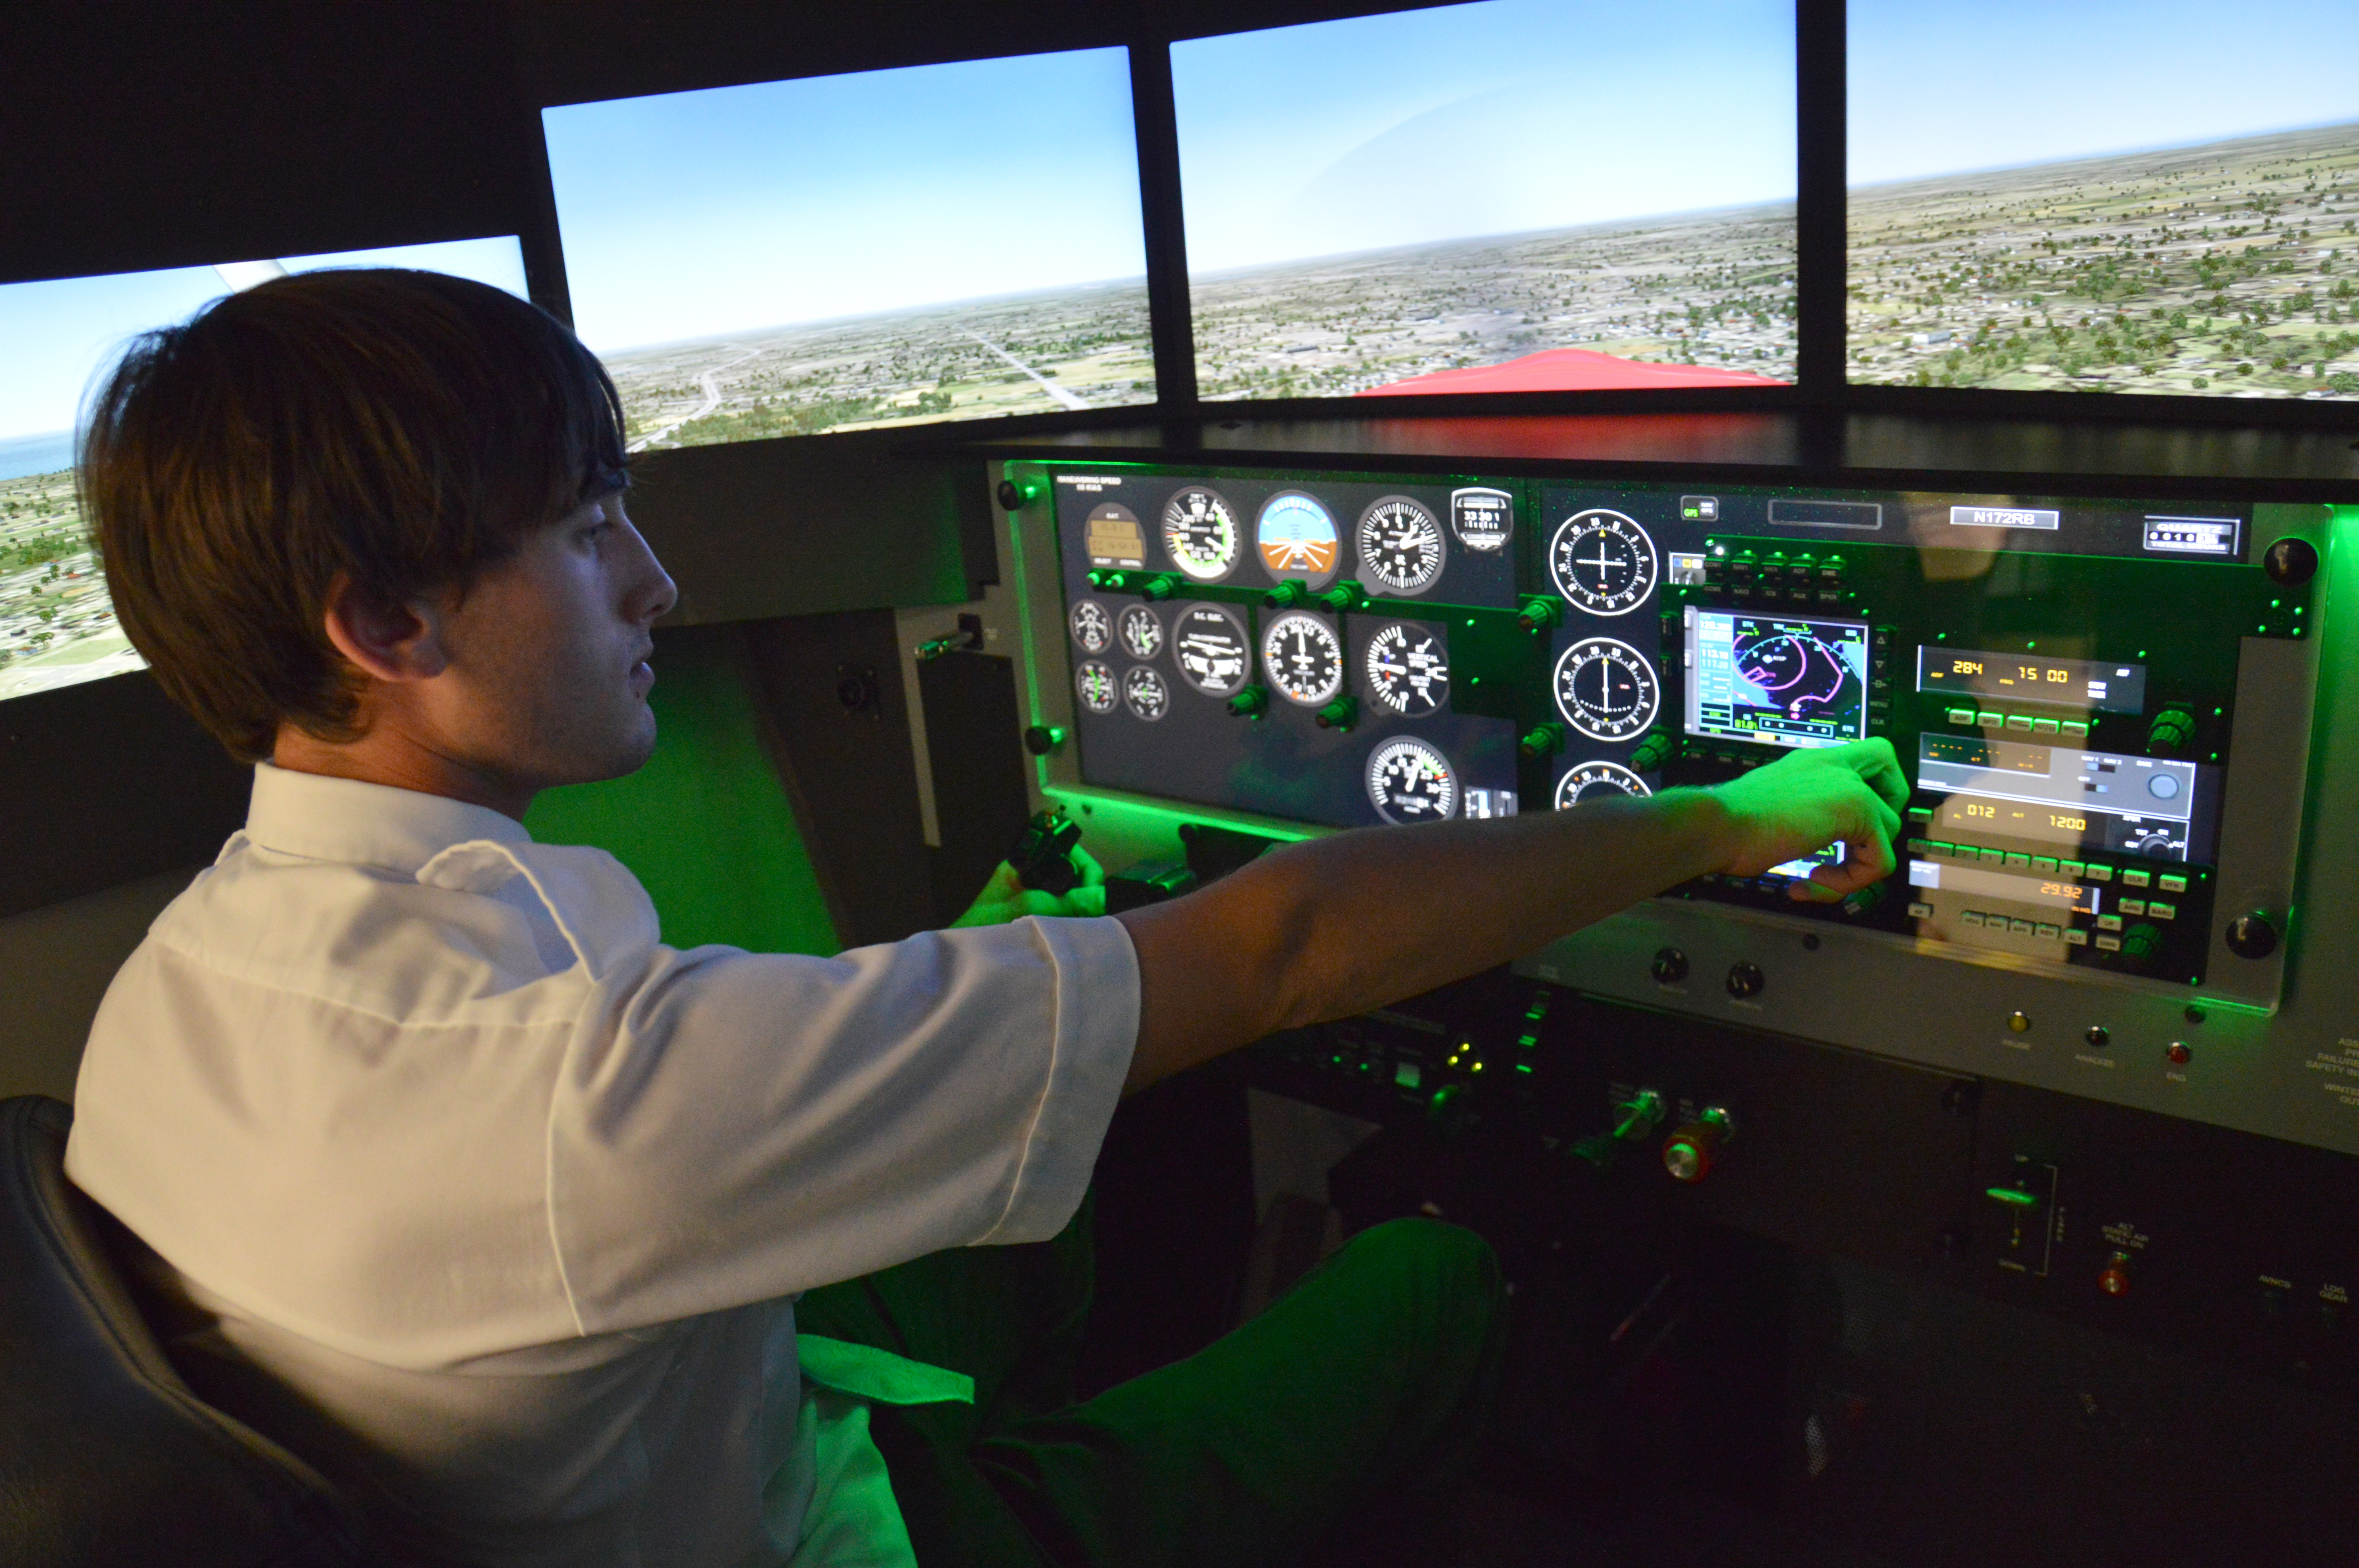 Professional Pilot Student Puts His Flying Skills To The Test In Our New Flight Simulator